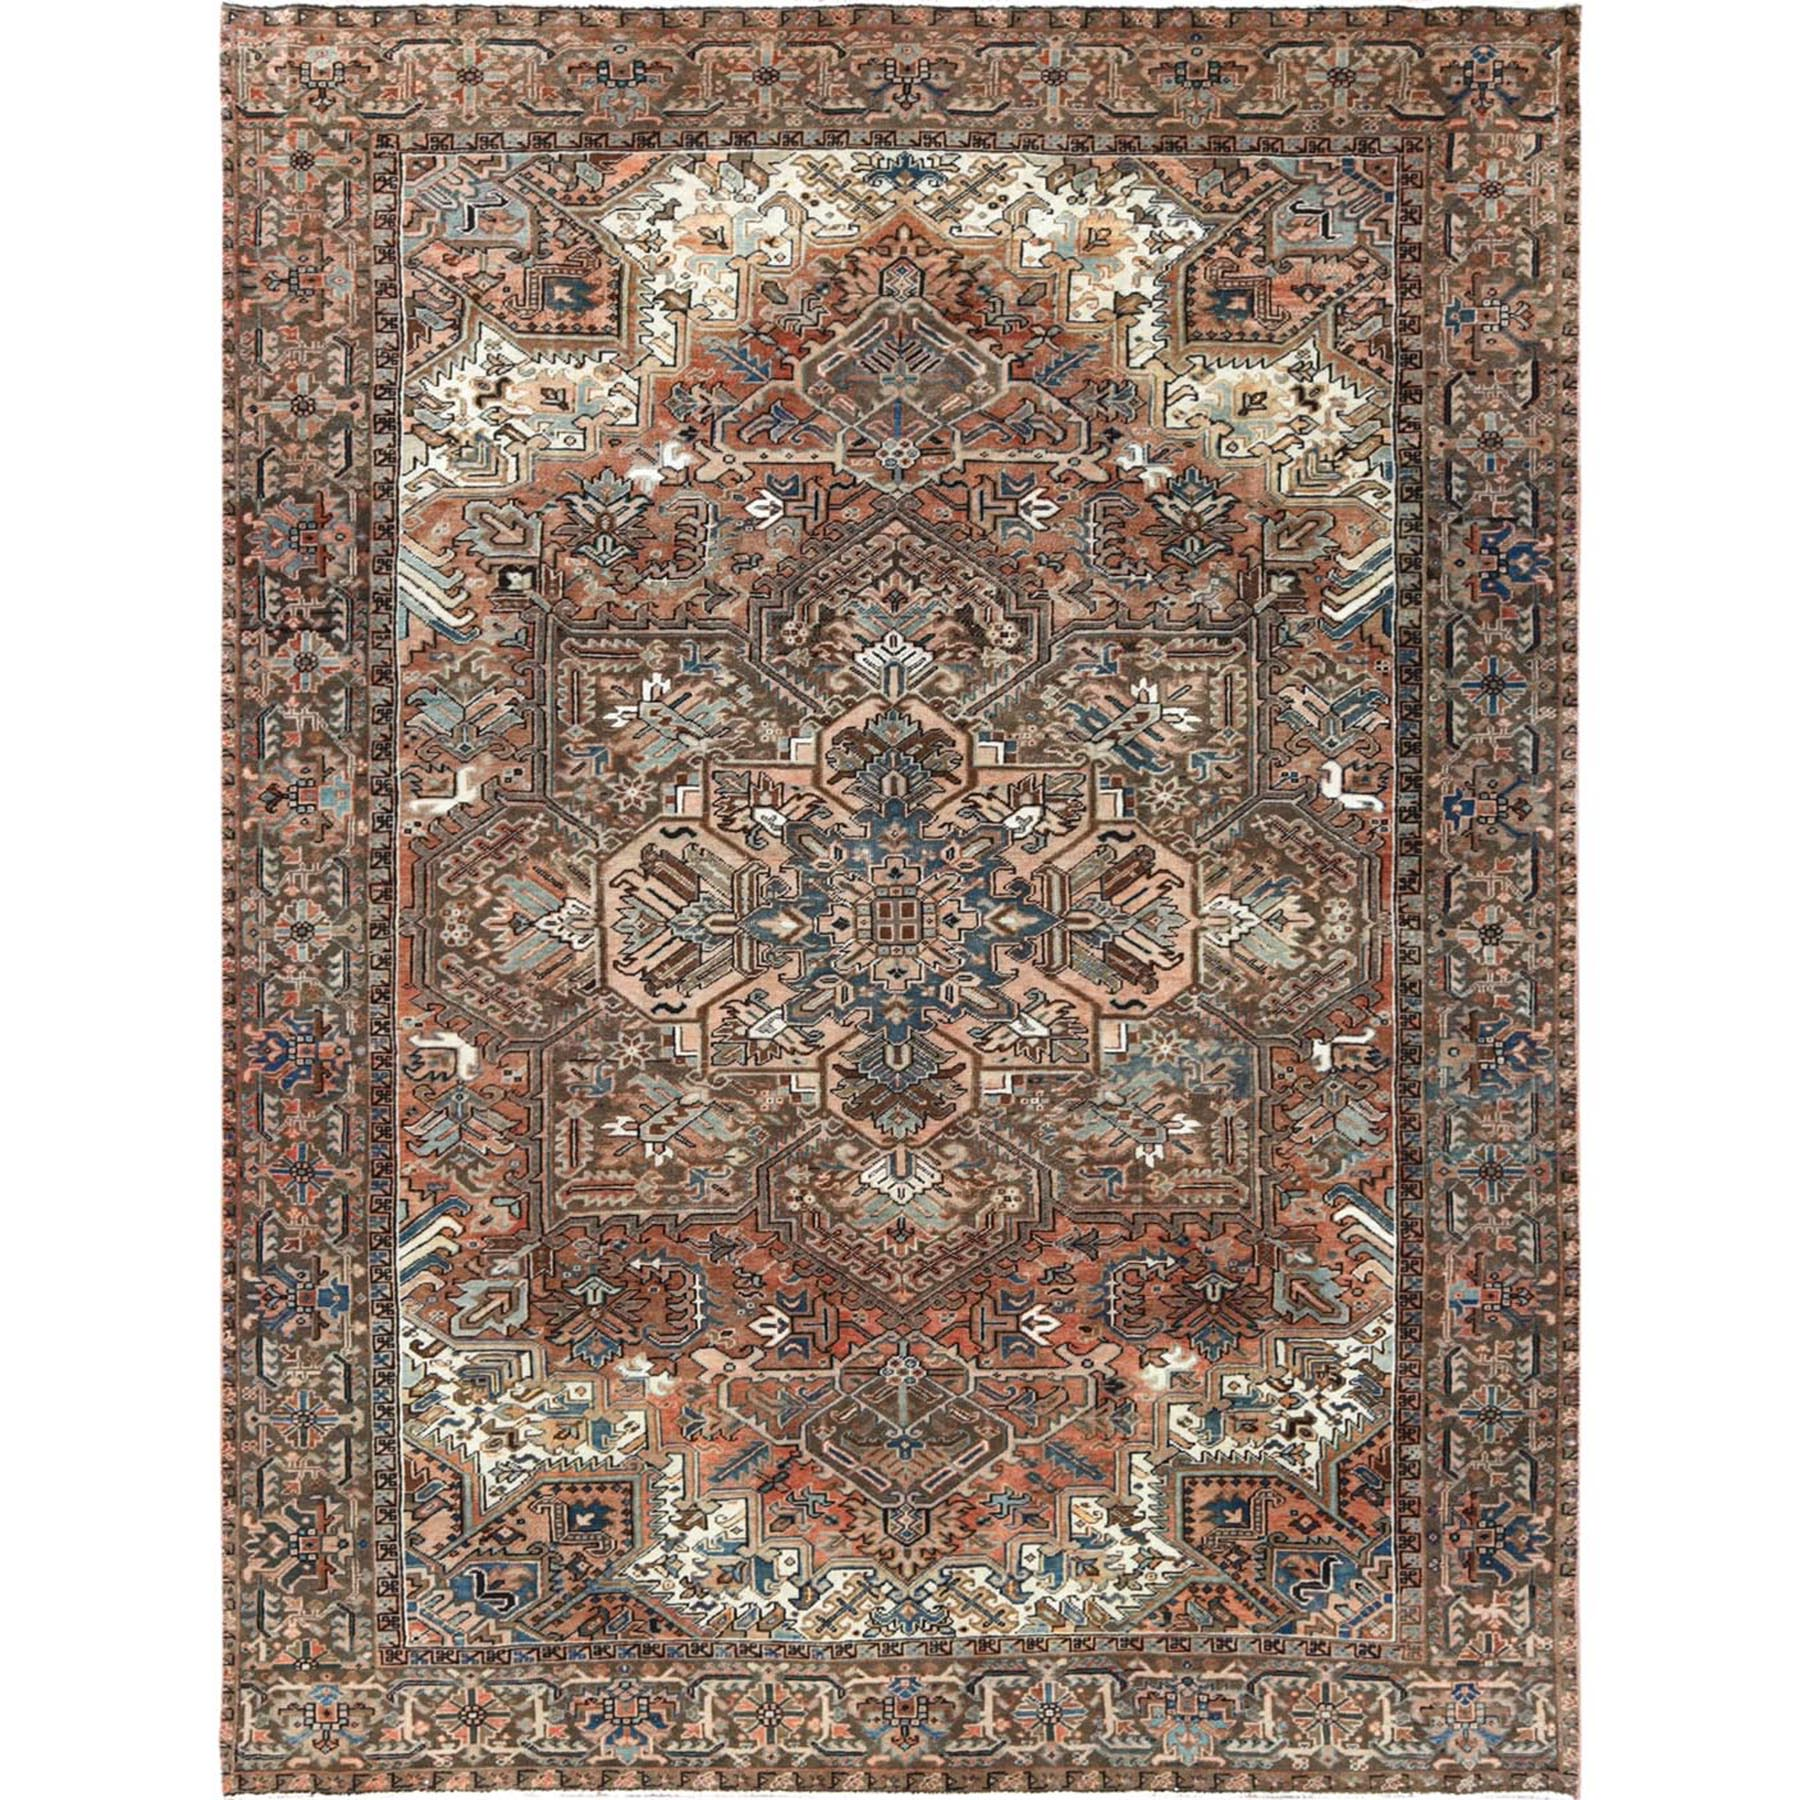 "8'10""x11'8"" Semi Antique Rust Red With Sunset Colors Persian Heriz Clean Pure Wool Hand Woven Oriental Rug"